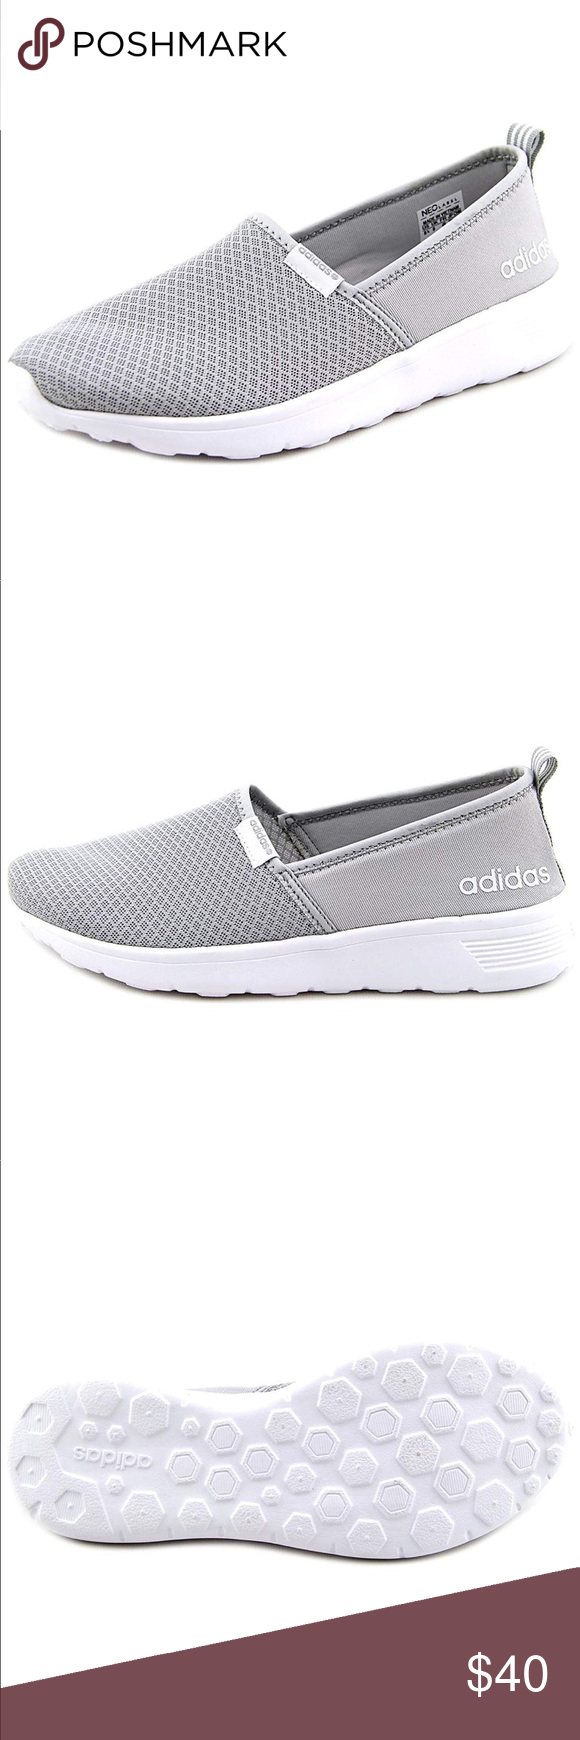 24678886e412 Gray Adidas Memory Foam Slip On Trainers I die!! These shoes are  everything! I was so obsessed with them I got them in an 8 even though I  wear a size 7